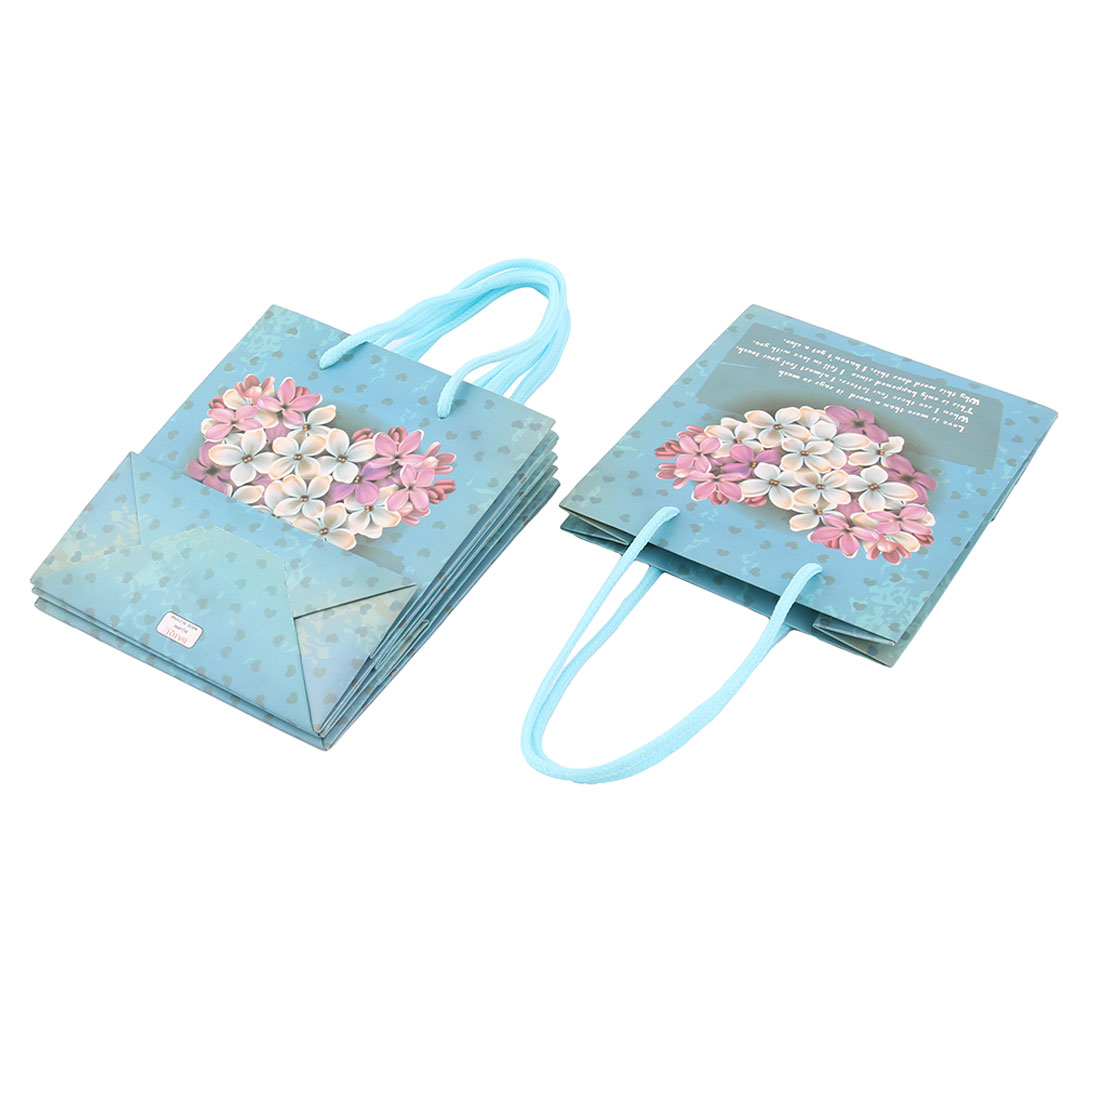 Shopping Retail Flower Pattern Foldable Holder Tote Wrapper Gift Bags 4 PCS